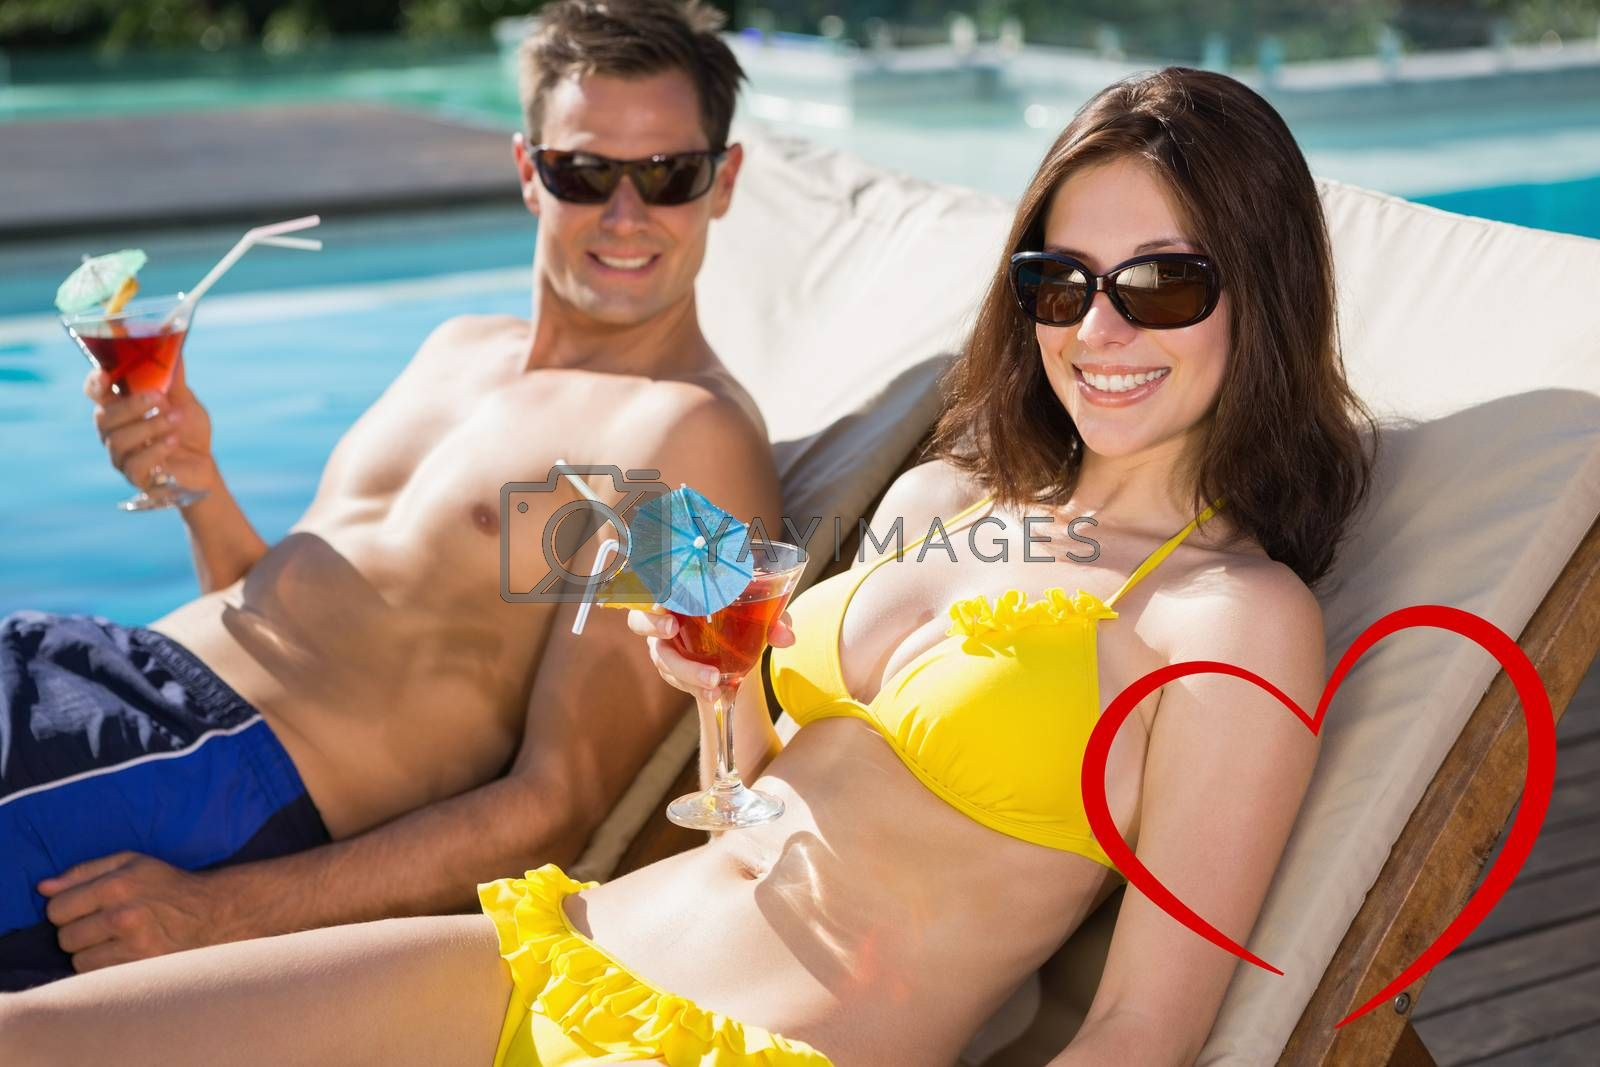 Smiling couple with drinks sitting by swimming pool against heart